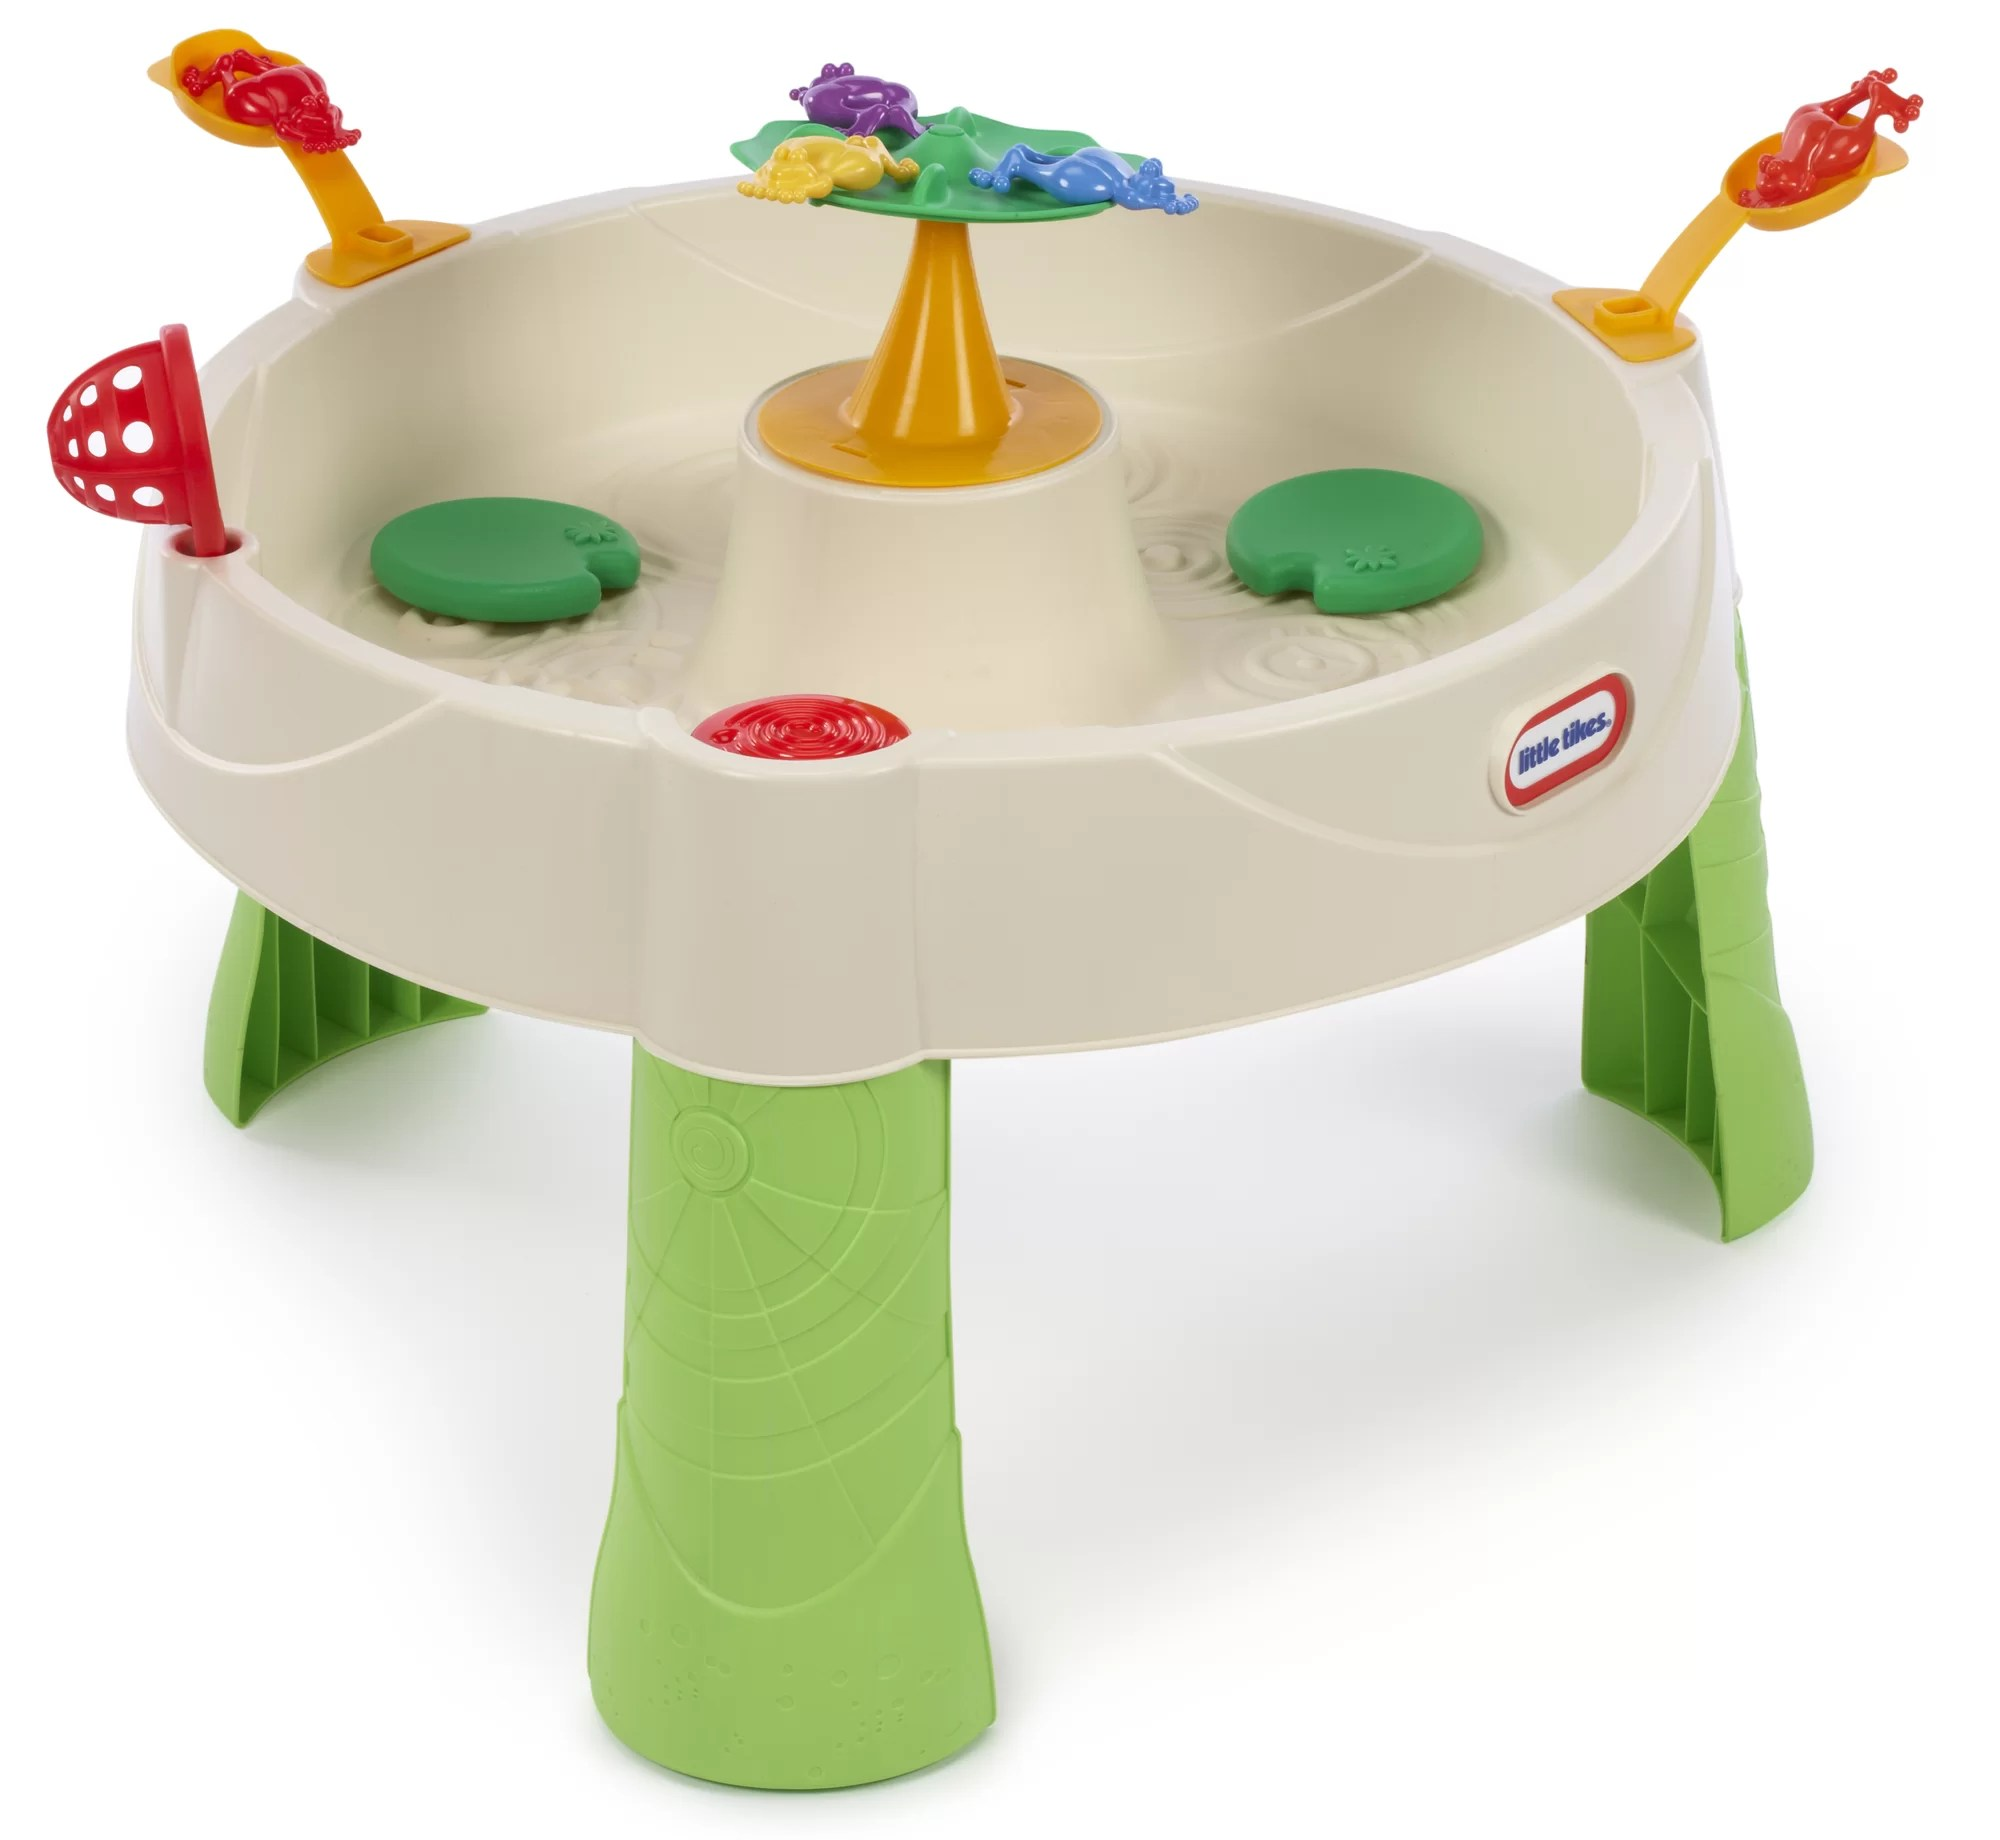 Little Tikes Frog Pond Outdoor Sand and Water Table